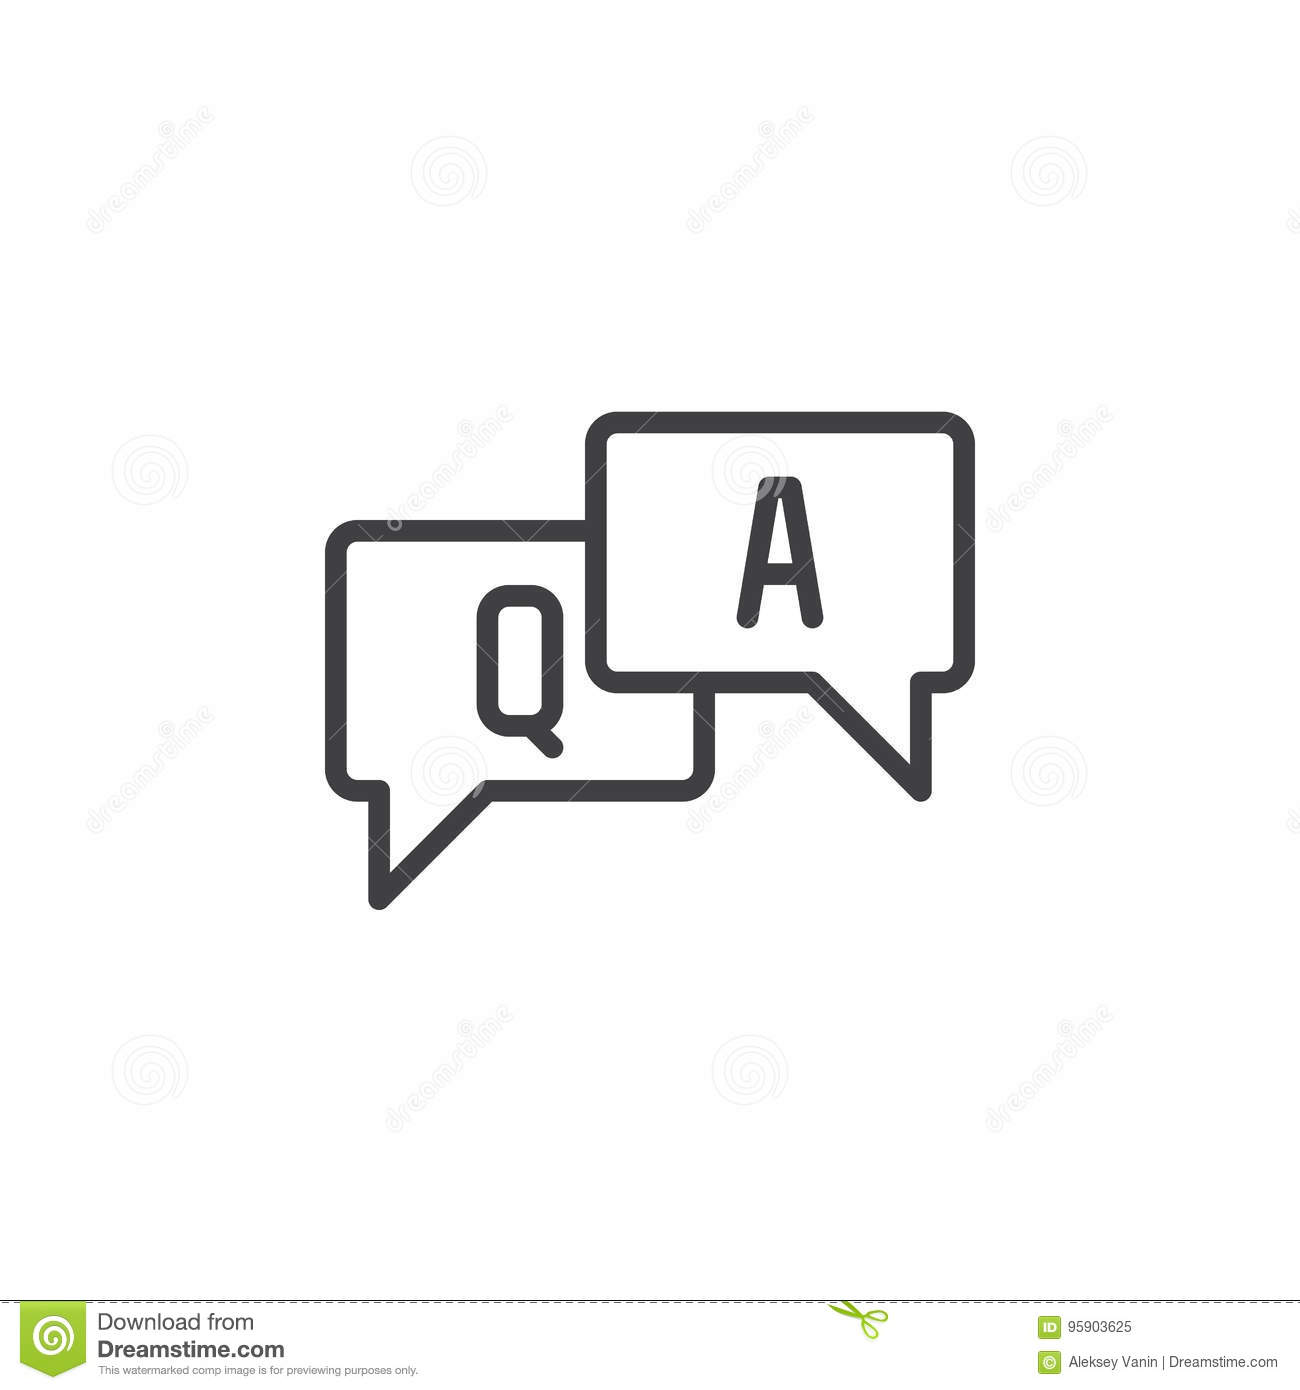 FAQ, Questions And Answers Line Icon, Outline Vector Sign